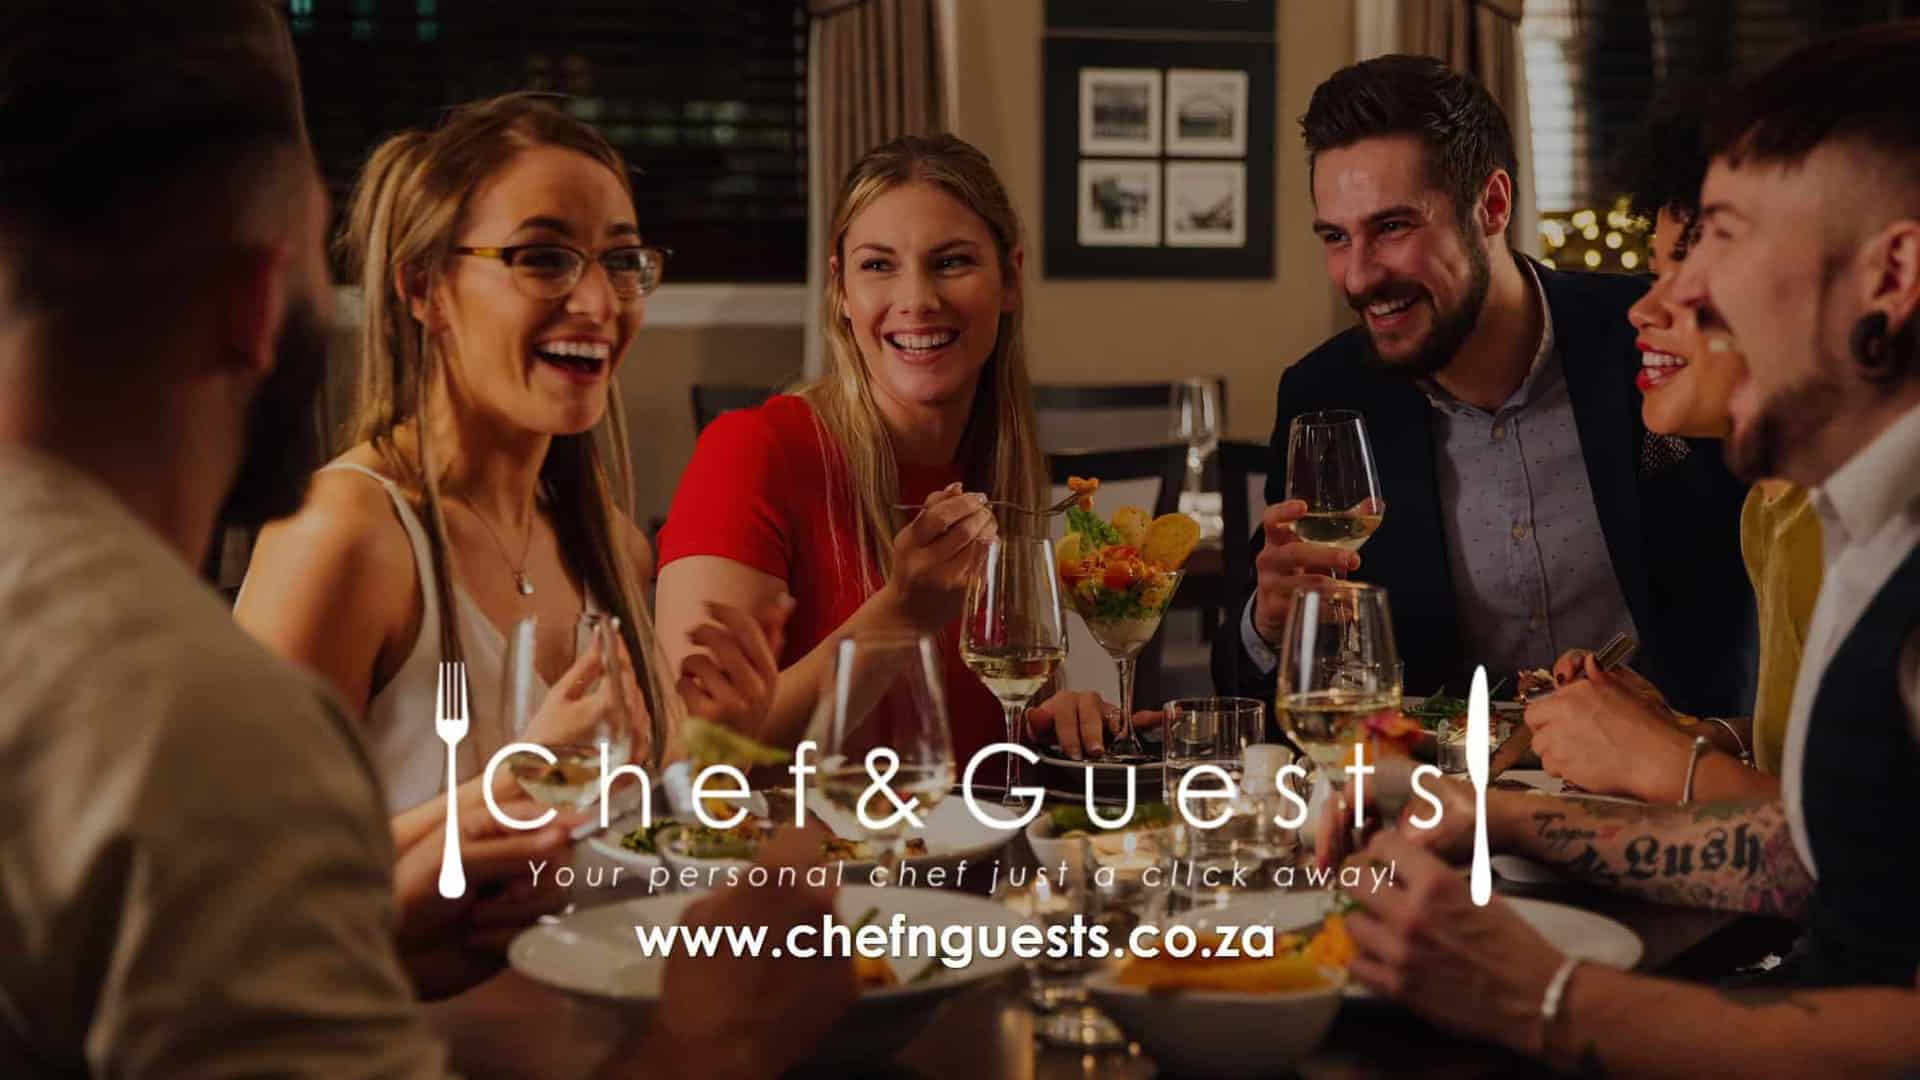 Chef & Guests